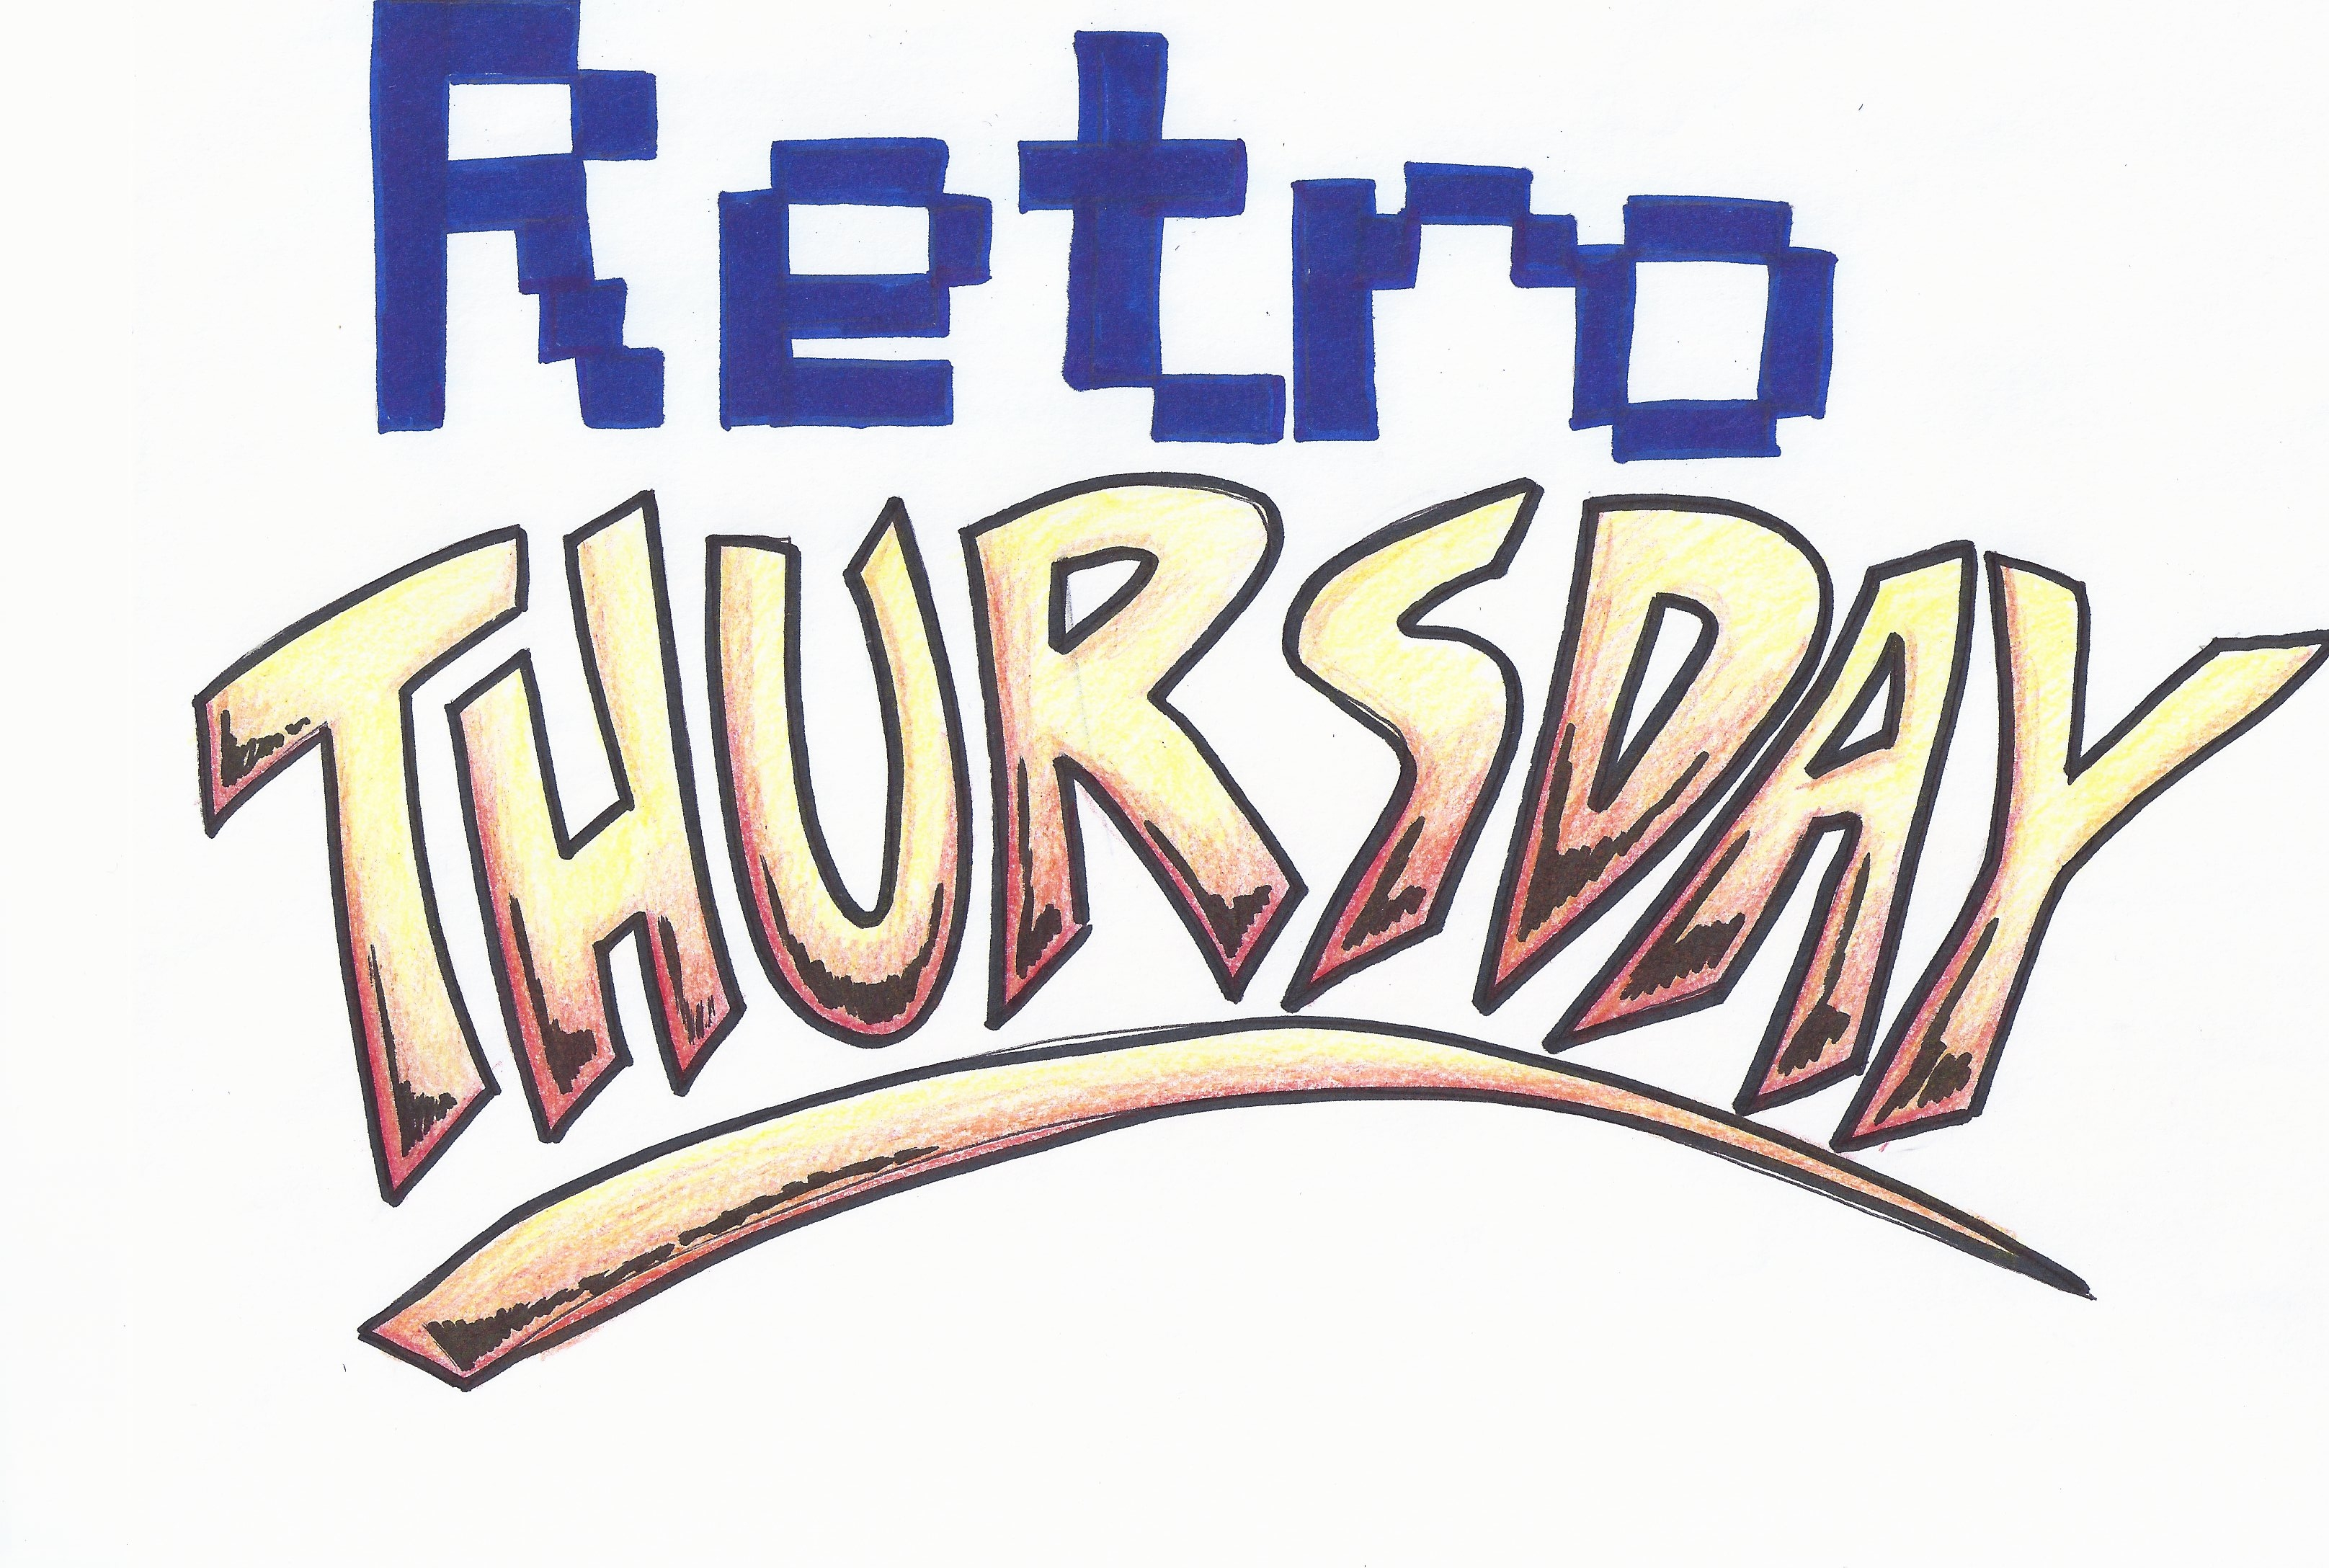 Retro Thursday: Ghosts'n Goblins